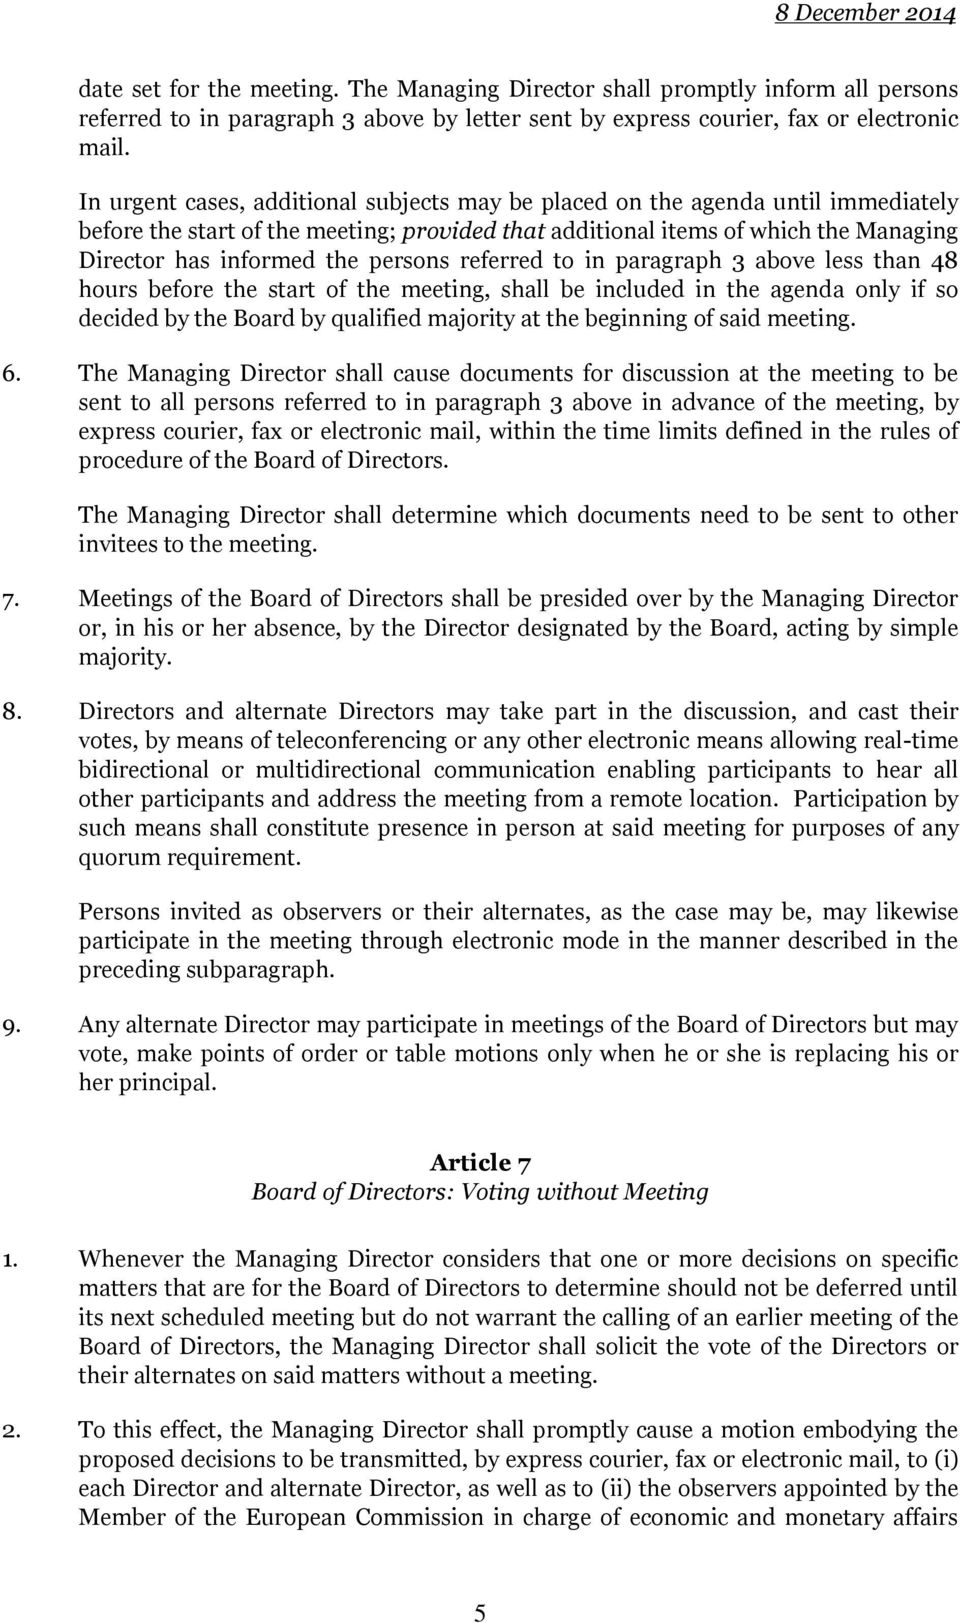 persons referred to in paragraph 3 above less than 48 hours before the start of the meeting, shall be included in the agenda only if so decided by the Board by qualified majority at the beginning of